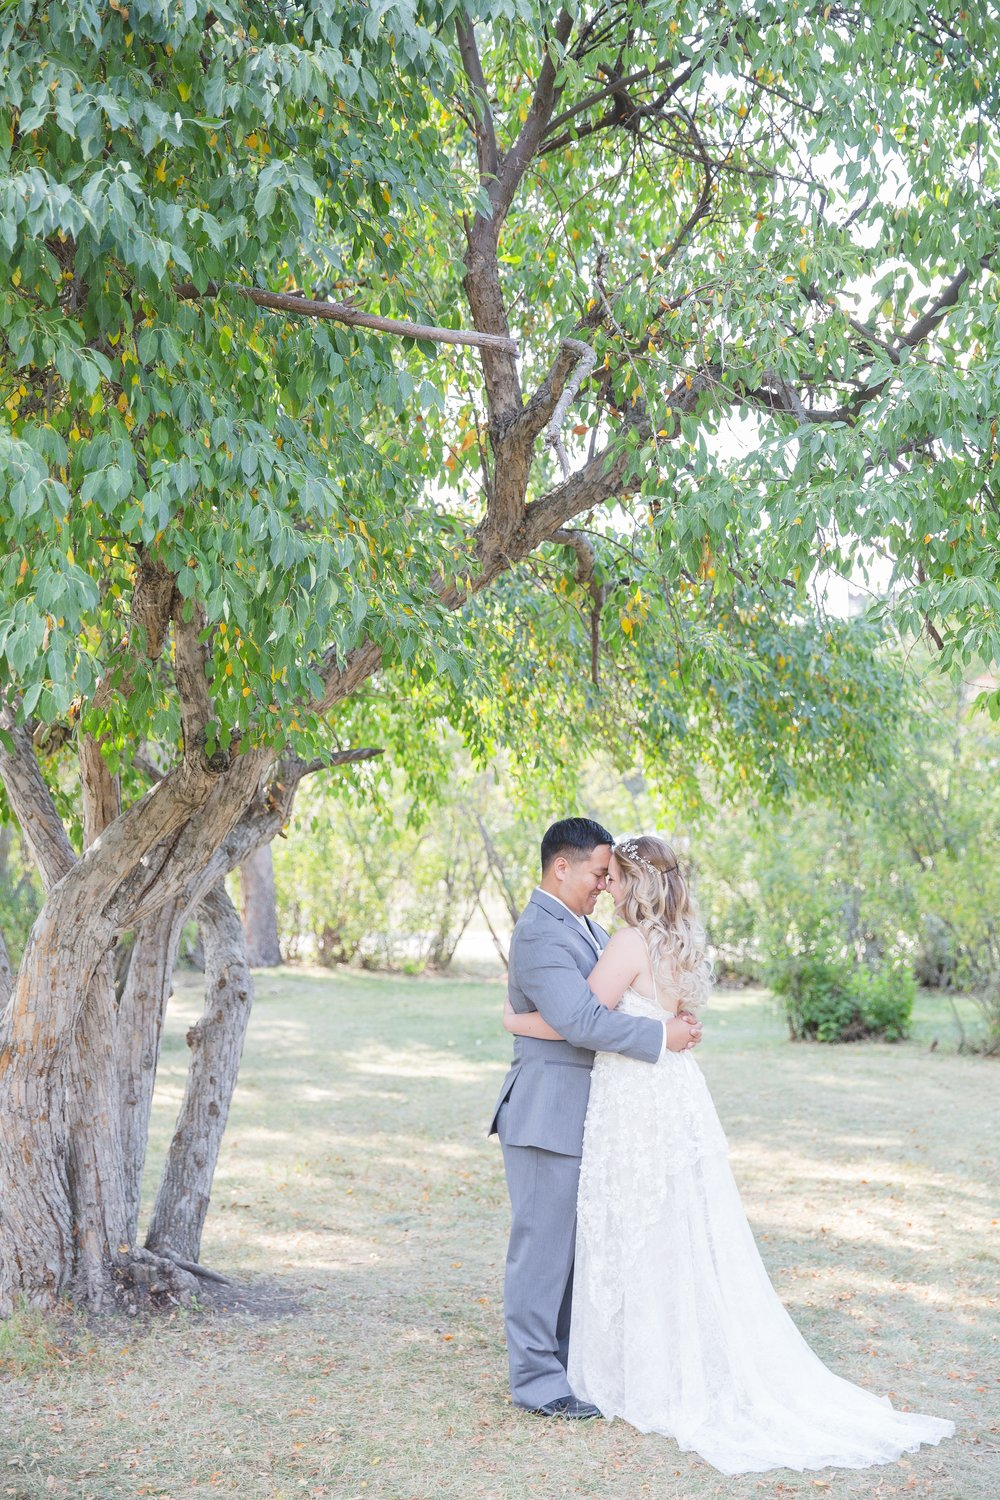 Calgary Wedding Photography at Bow Valley Ranche